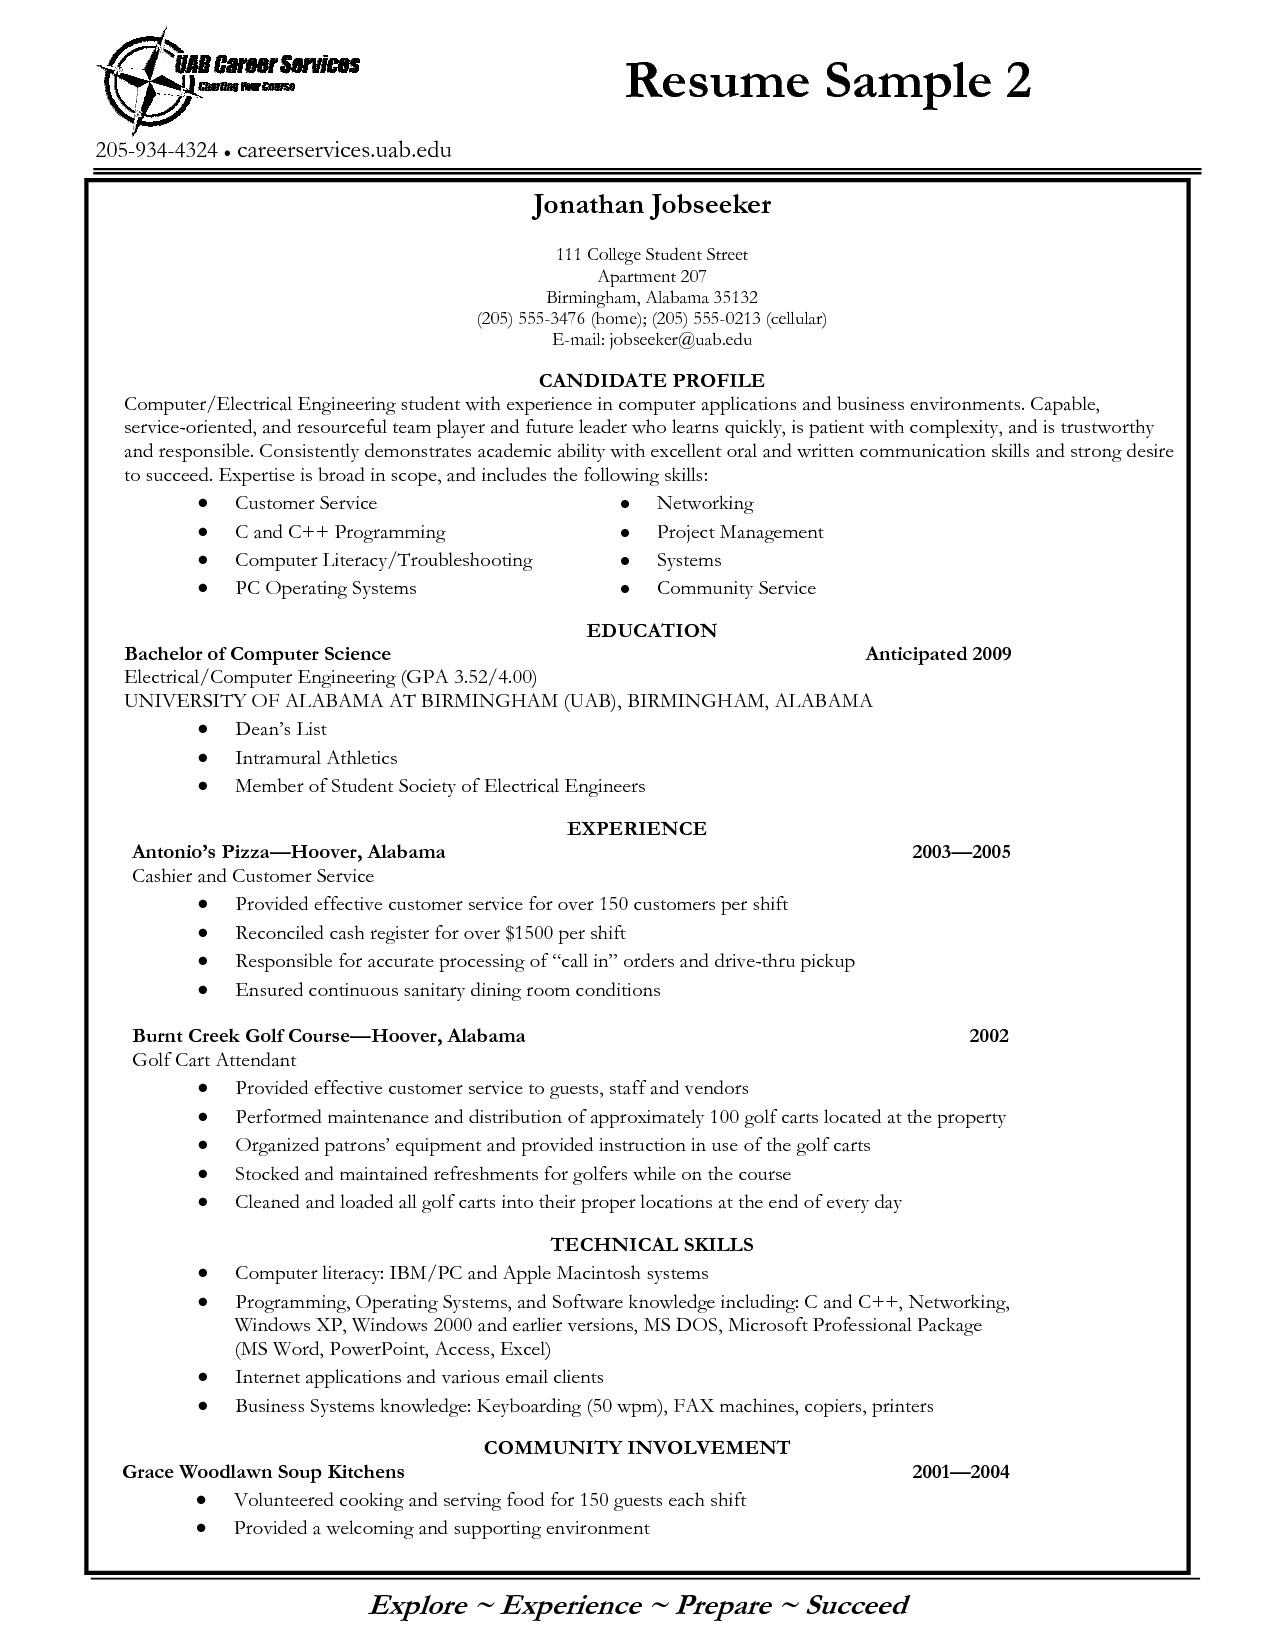 Sample Resume With No Experience Tags College Graduate Resume No Experience College Graduate Resume